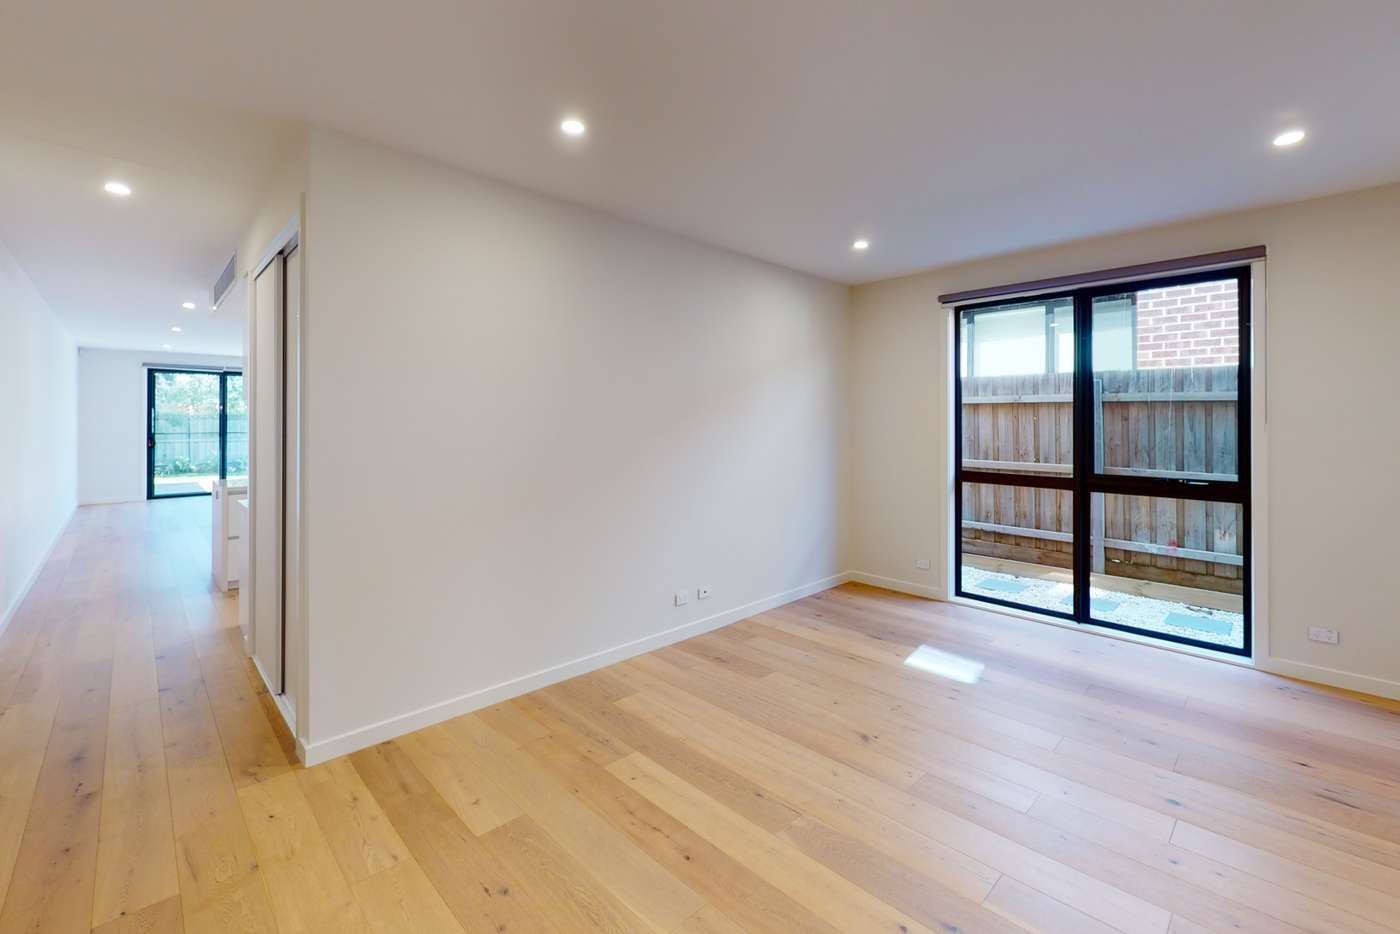 Sixth view of Homely house listing, 15b Stockdale Avenue, Bentleigh East VIC 3165